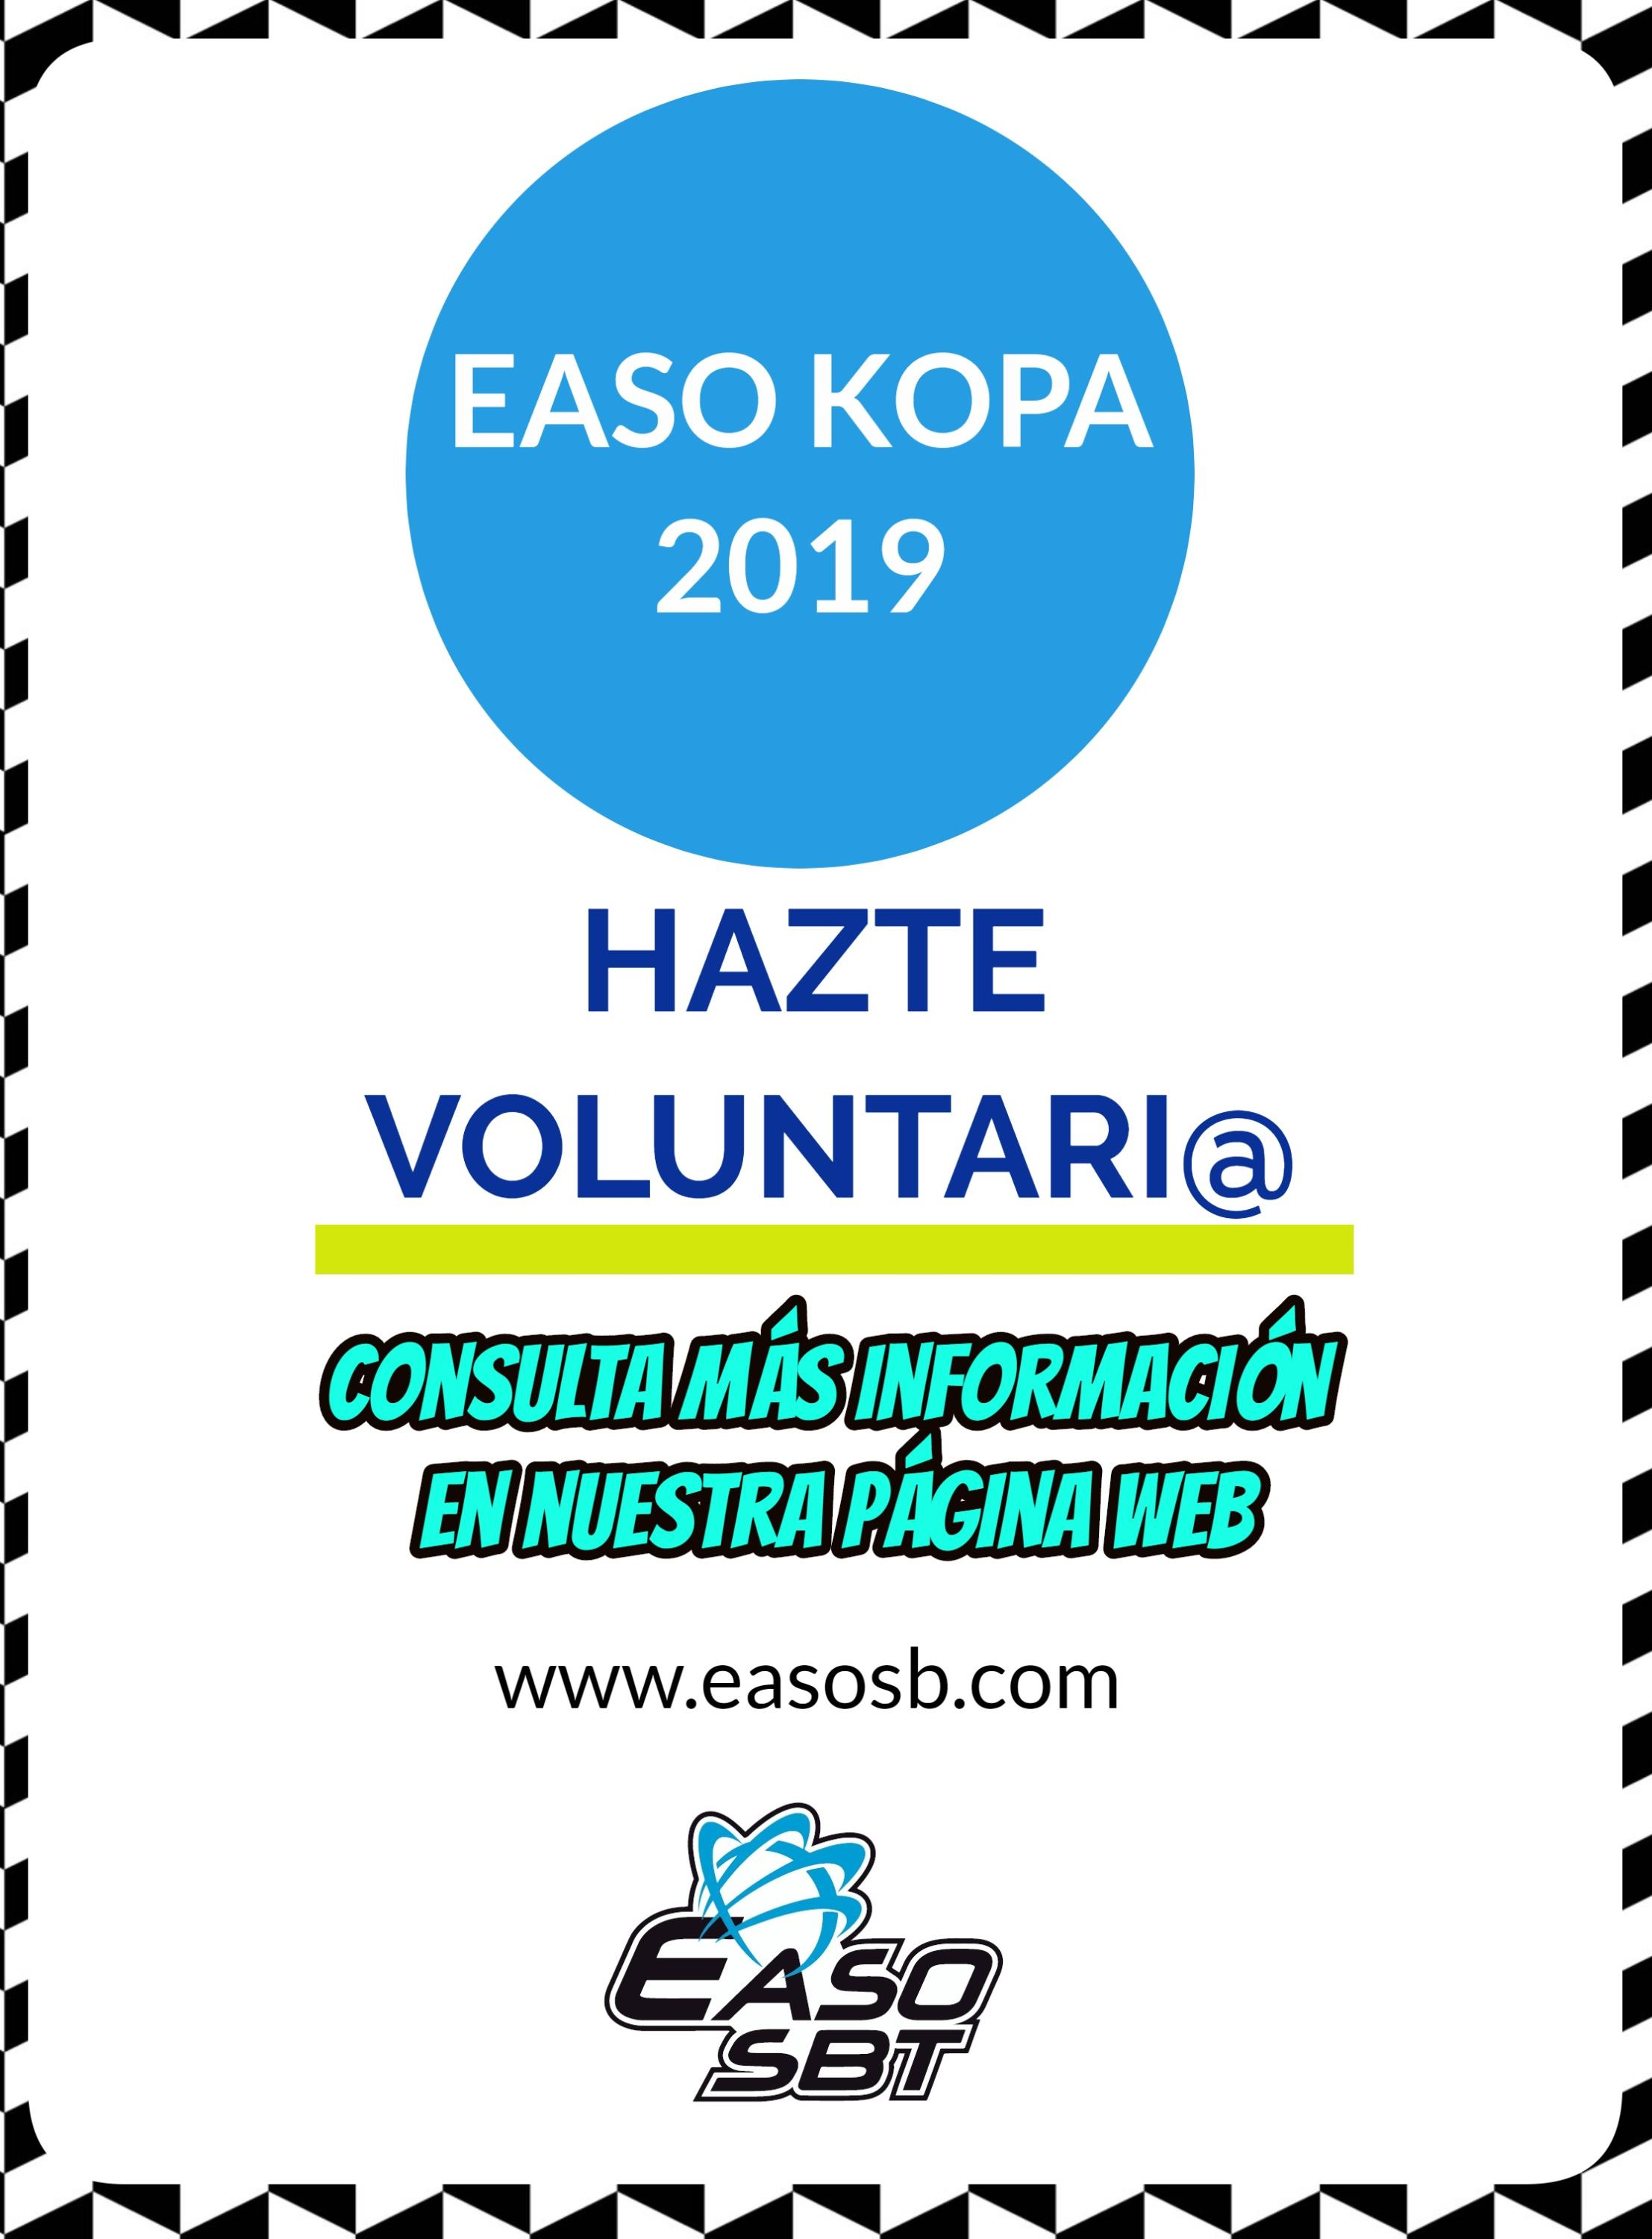 VOLUNTARIADO EASO KOPA 2019